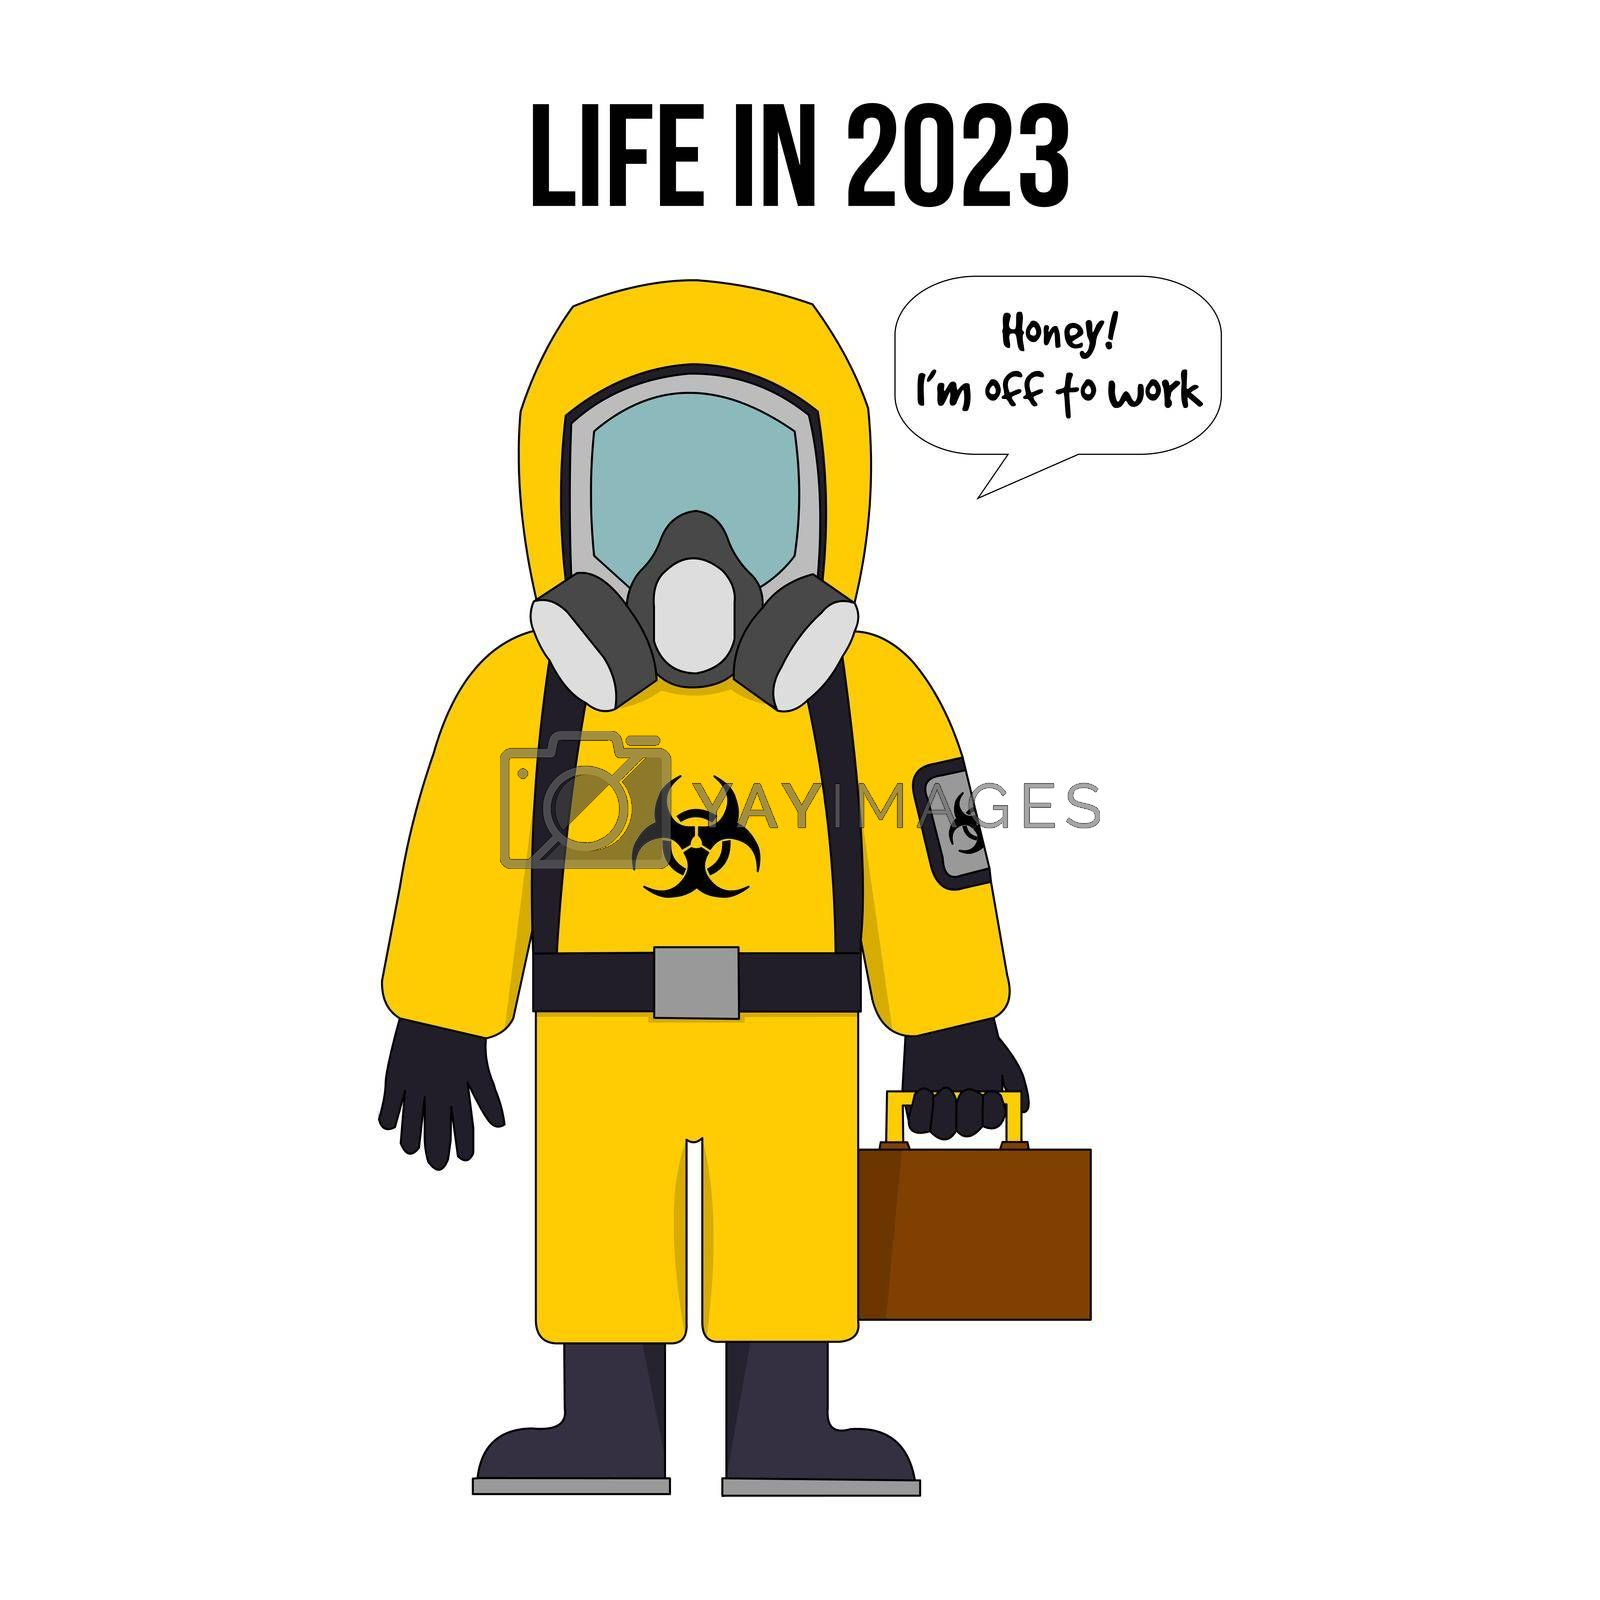 "A person holding a suitcase going to work wearing a hazard suit with the text ""life in 2023""."